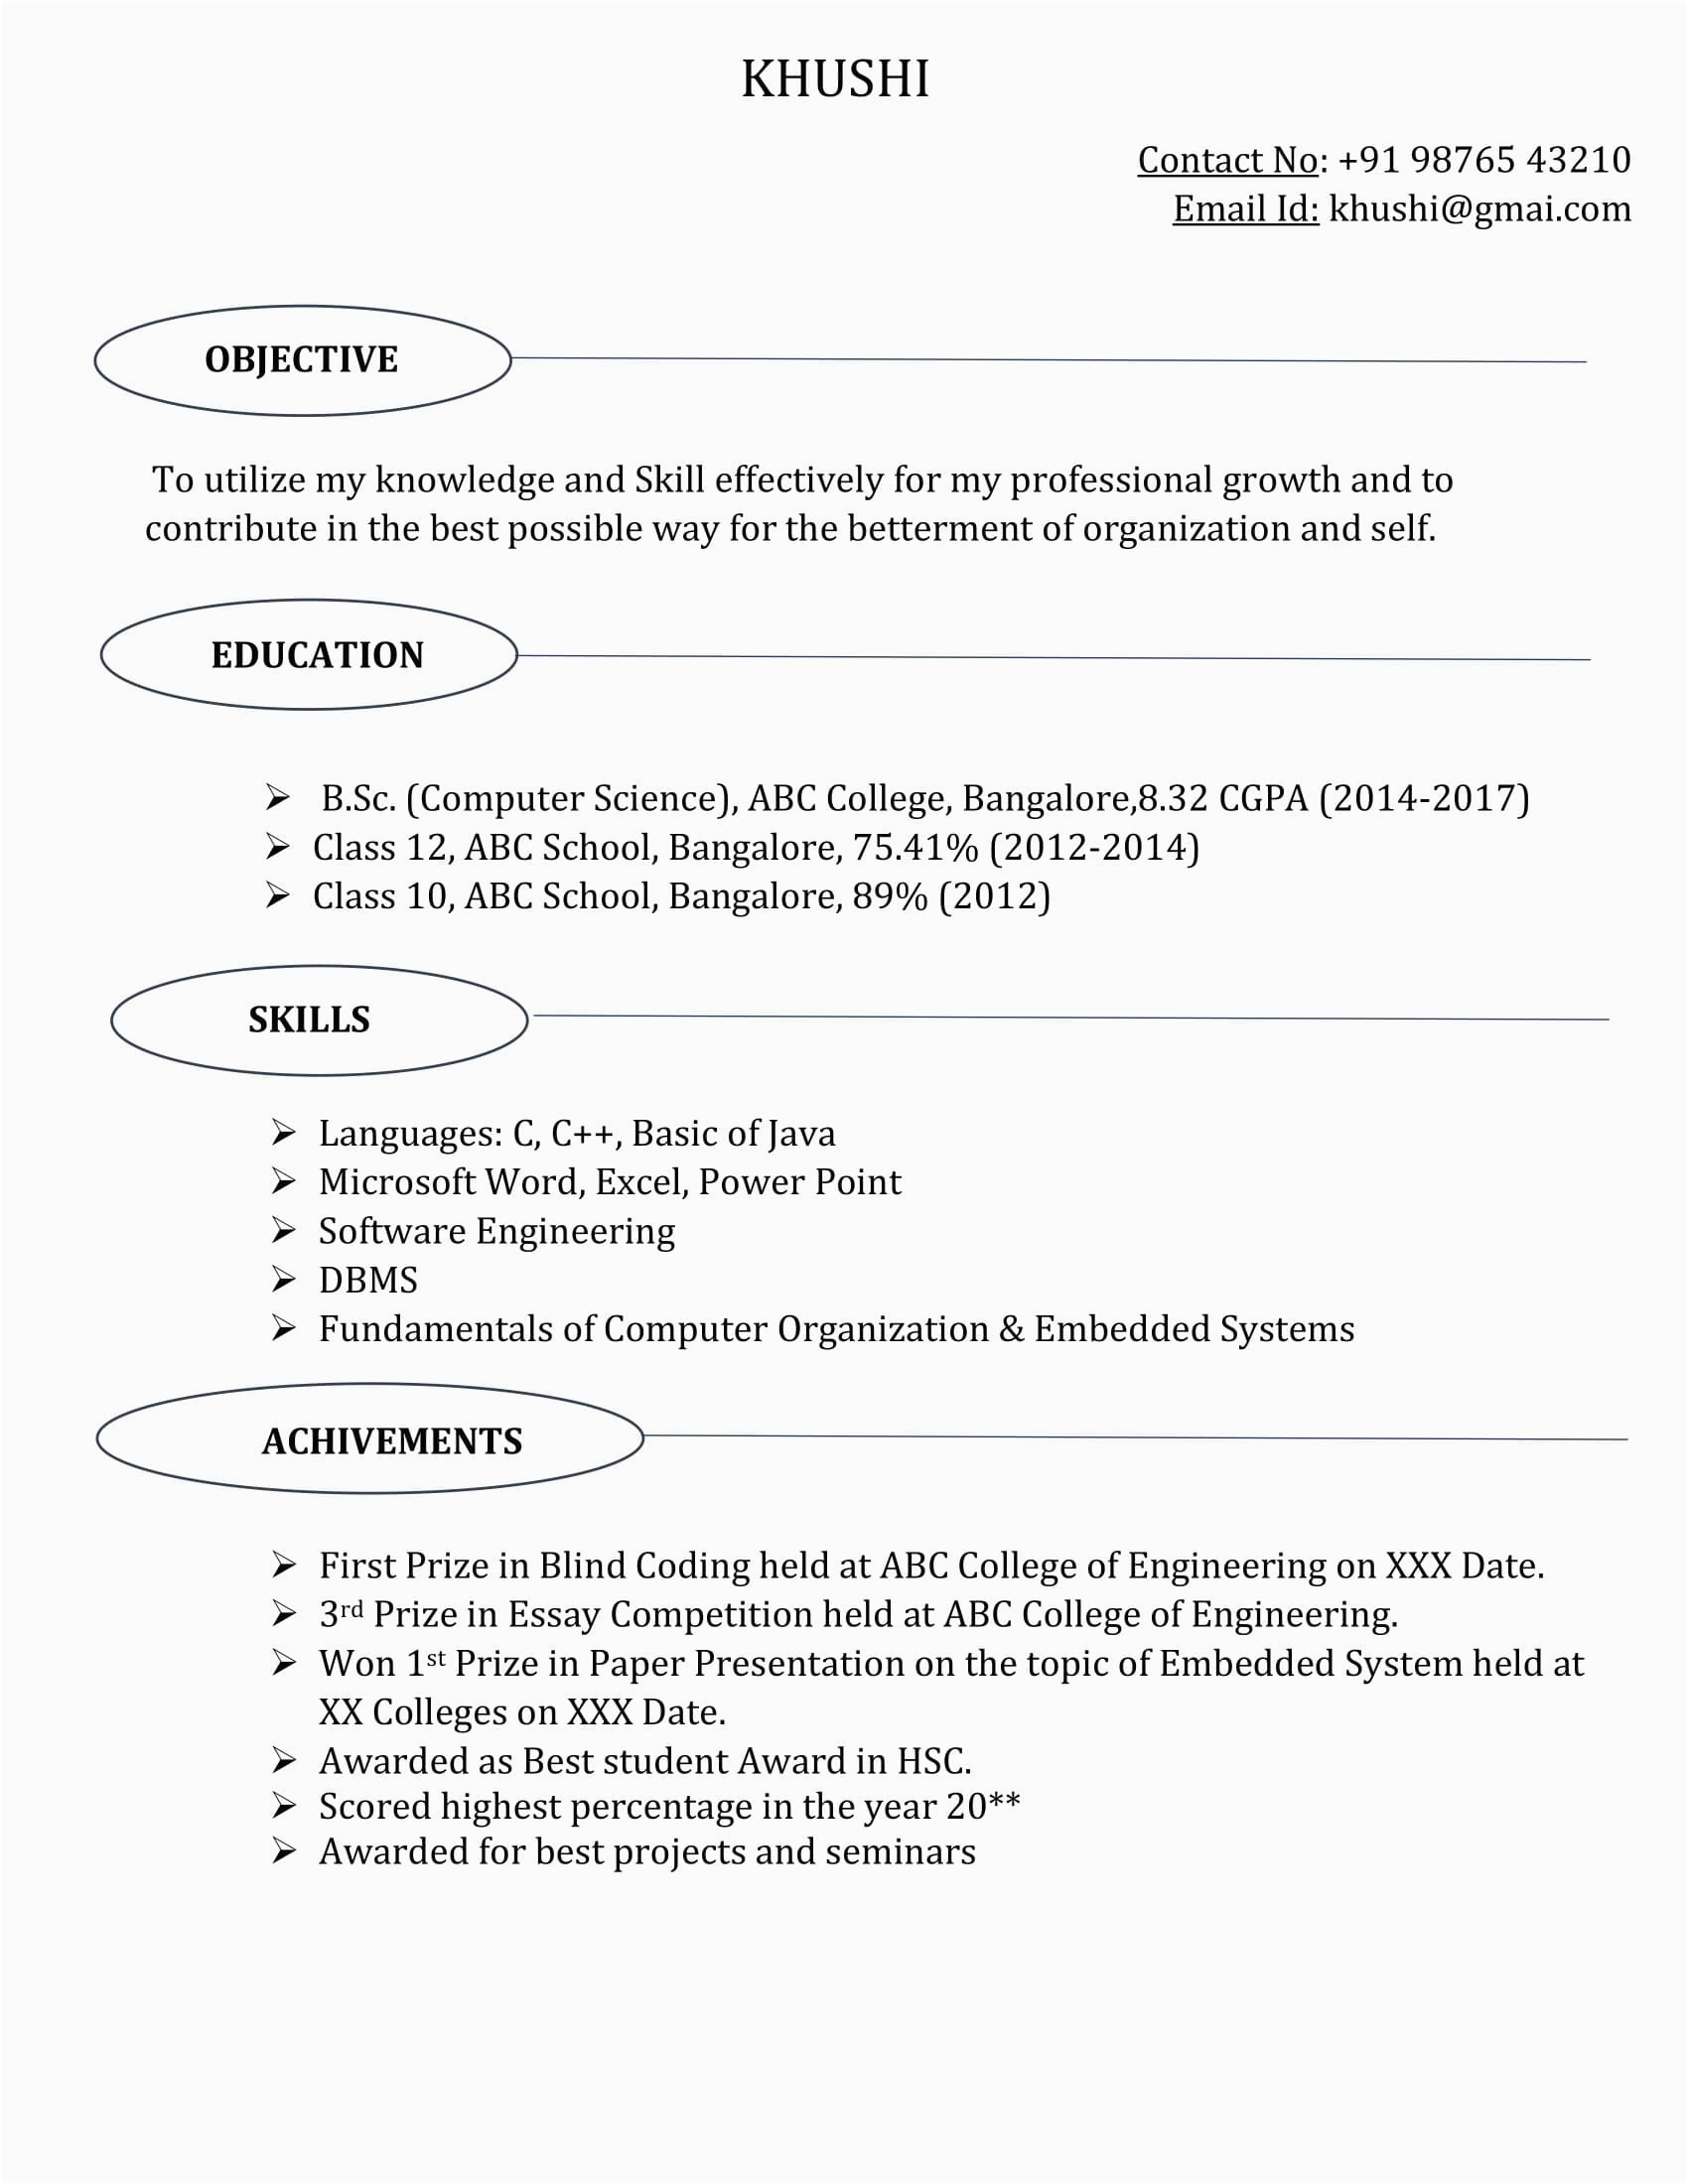 bsc puter science resume template 4